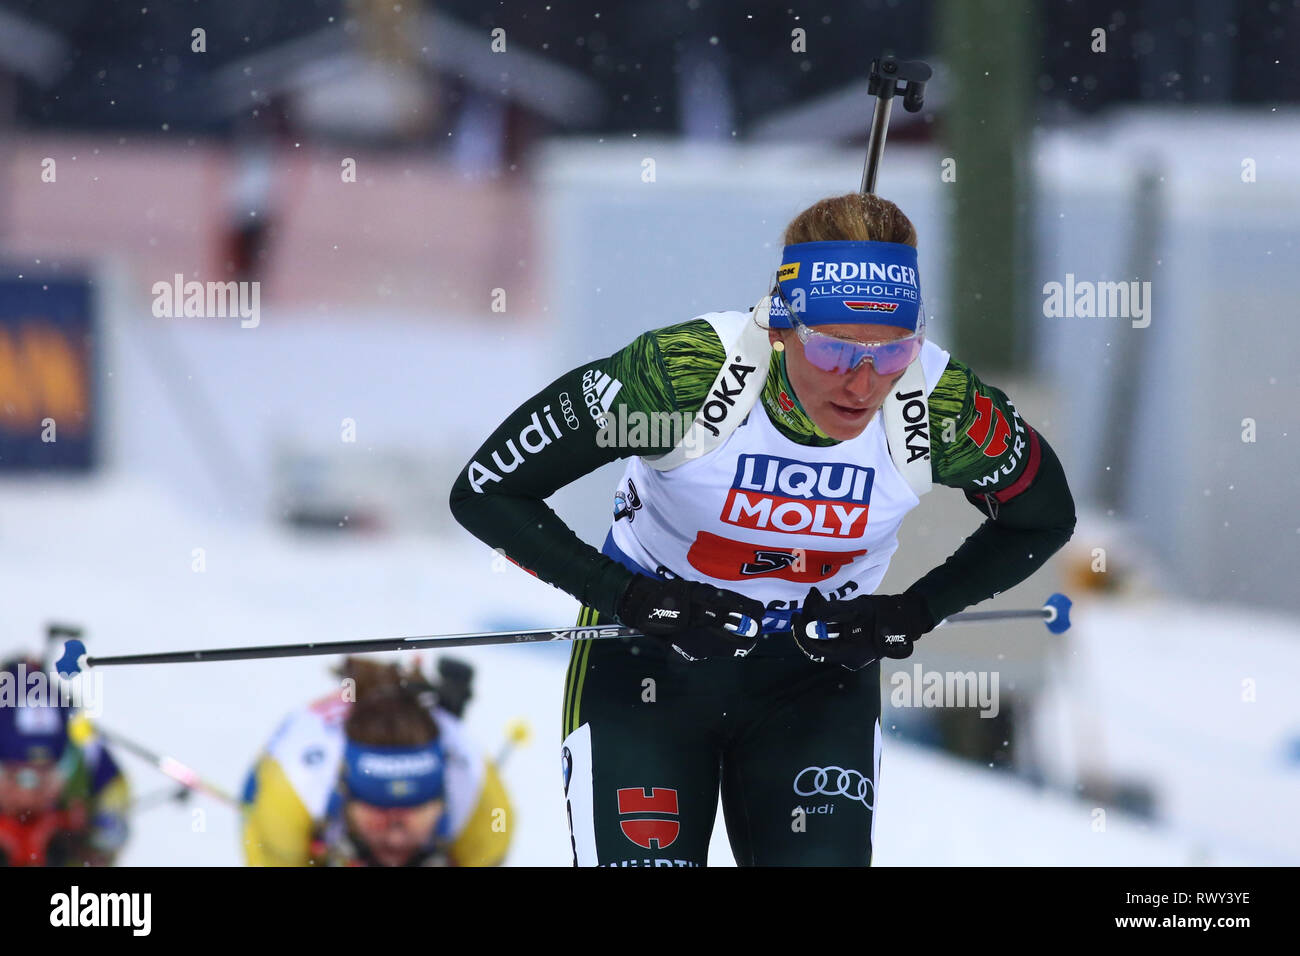 Ostersund, Sweden. 7th Mar, 2019. IBU World Championships Biathlon, mixed relay; Vanessa Hinz (GER) in action Credit: Action Plus Sports/Alamy Live News - Stock Image